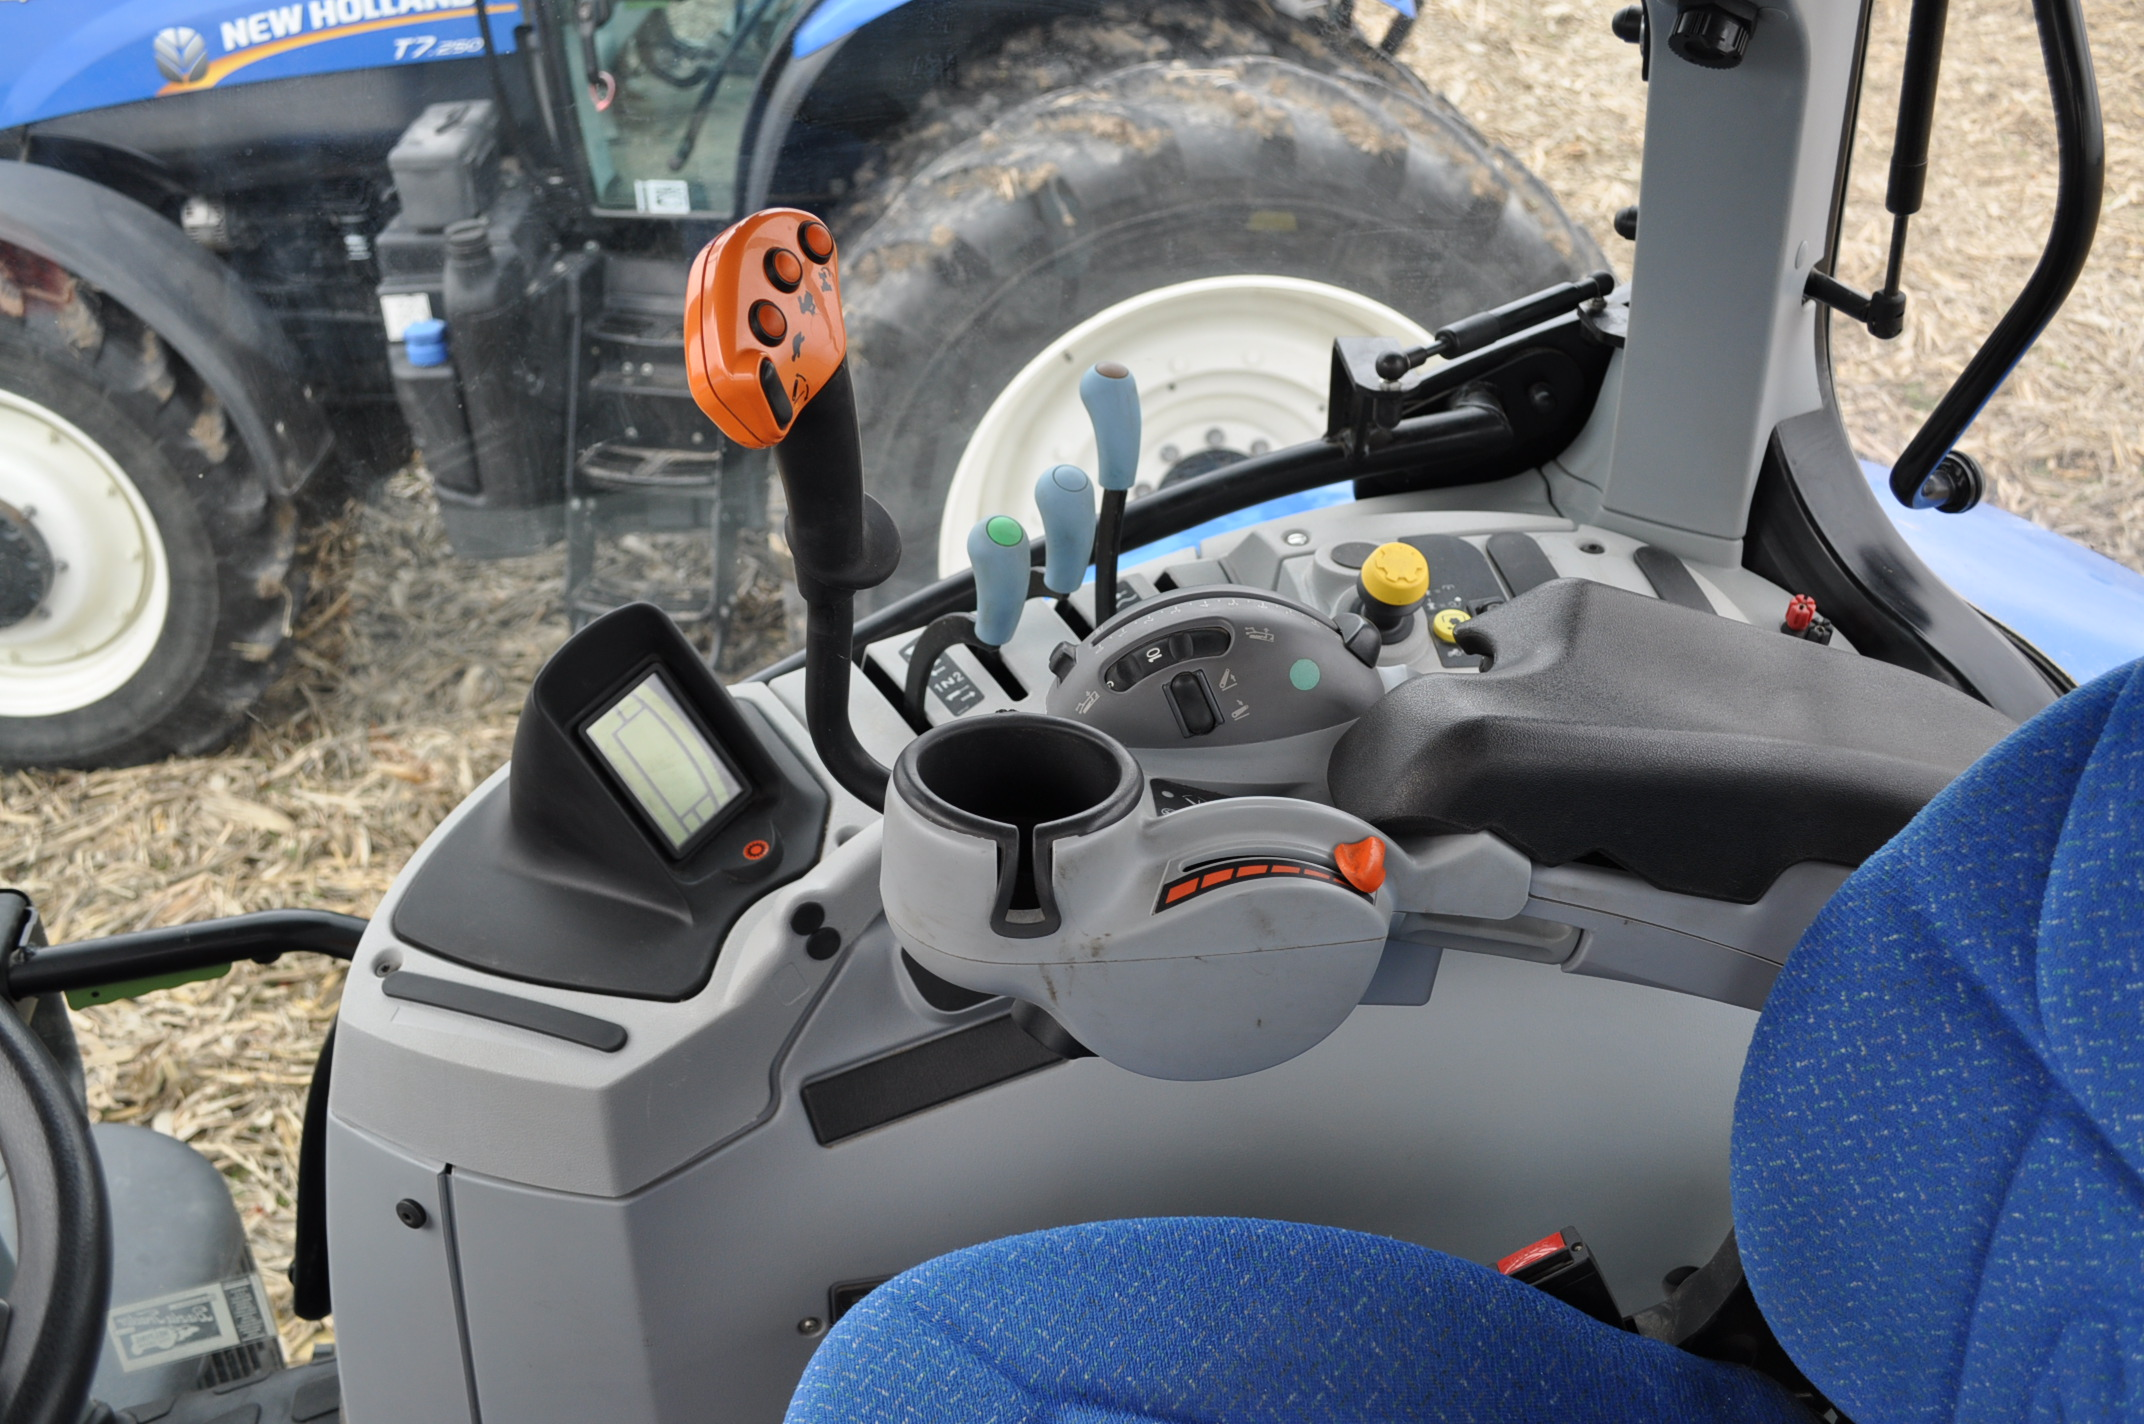 New Holland T7.210 MFWD tractor, 460/85 R 42 rear, 380/85 R 30 Firestone front, Super Steer - Image 16 of 24